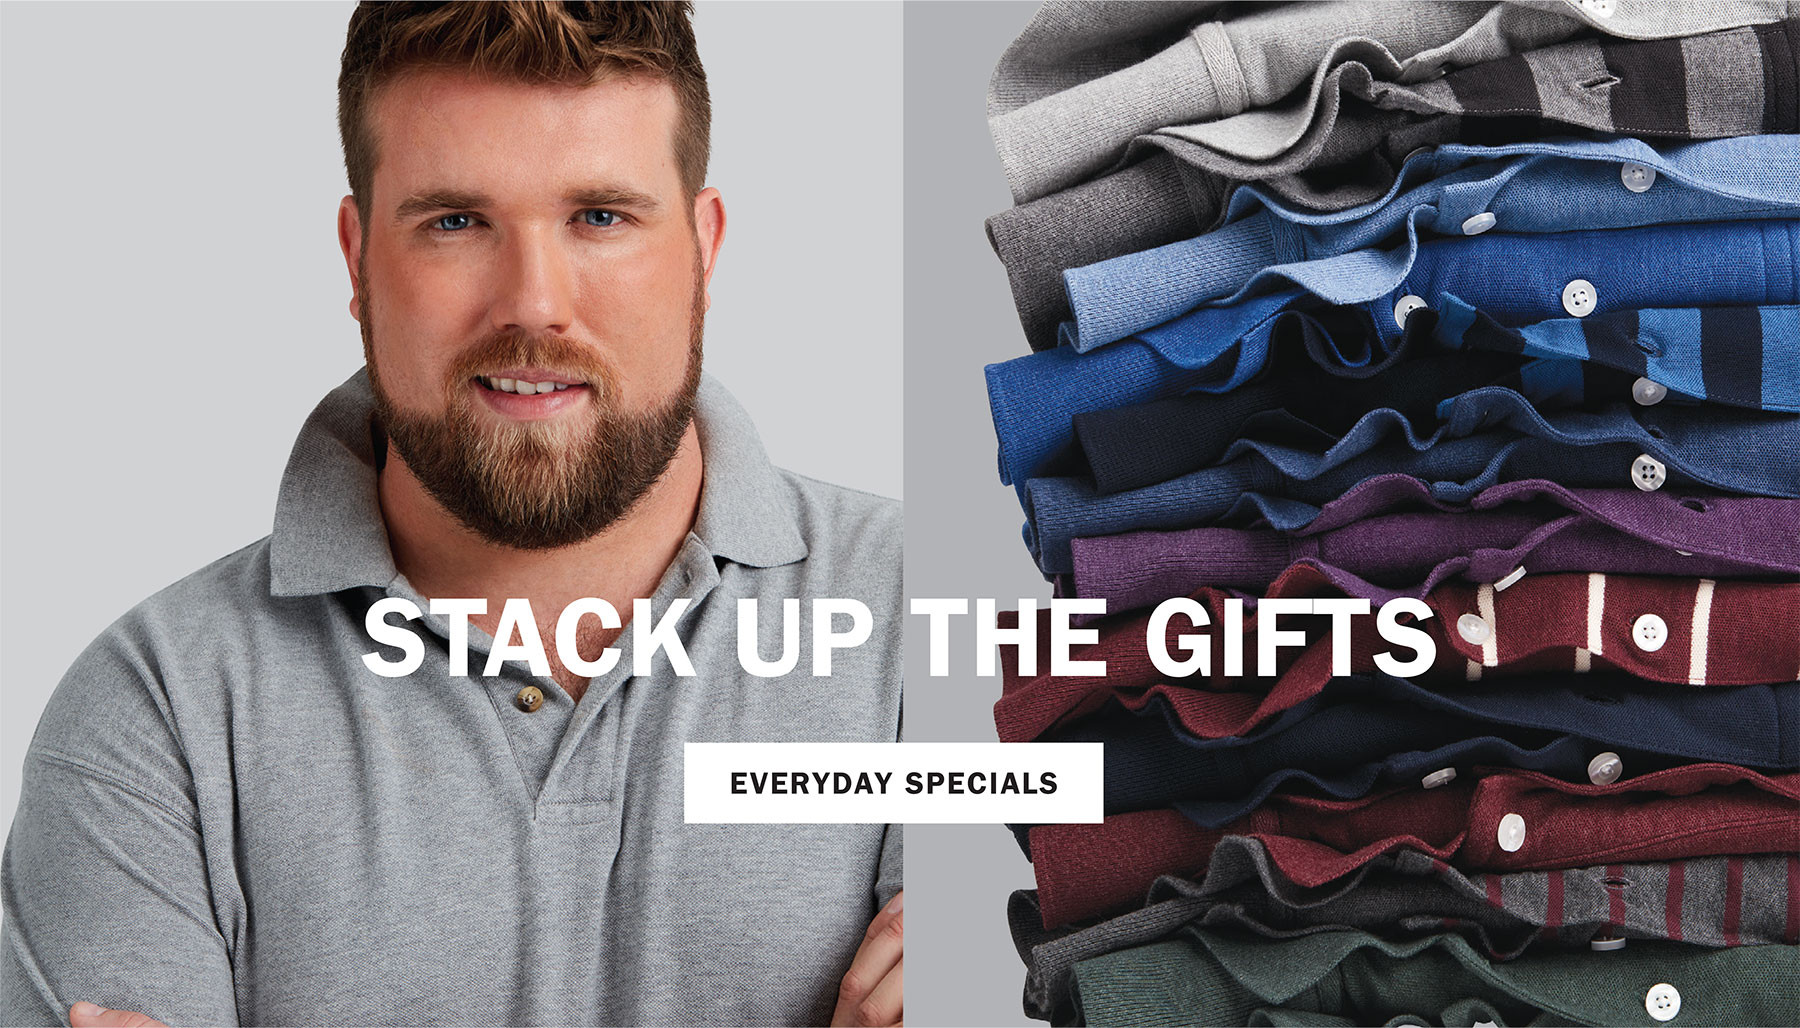 STACK UP THE GIFTS | EVERYDAY SPECIALS